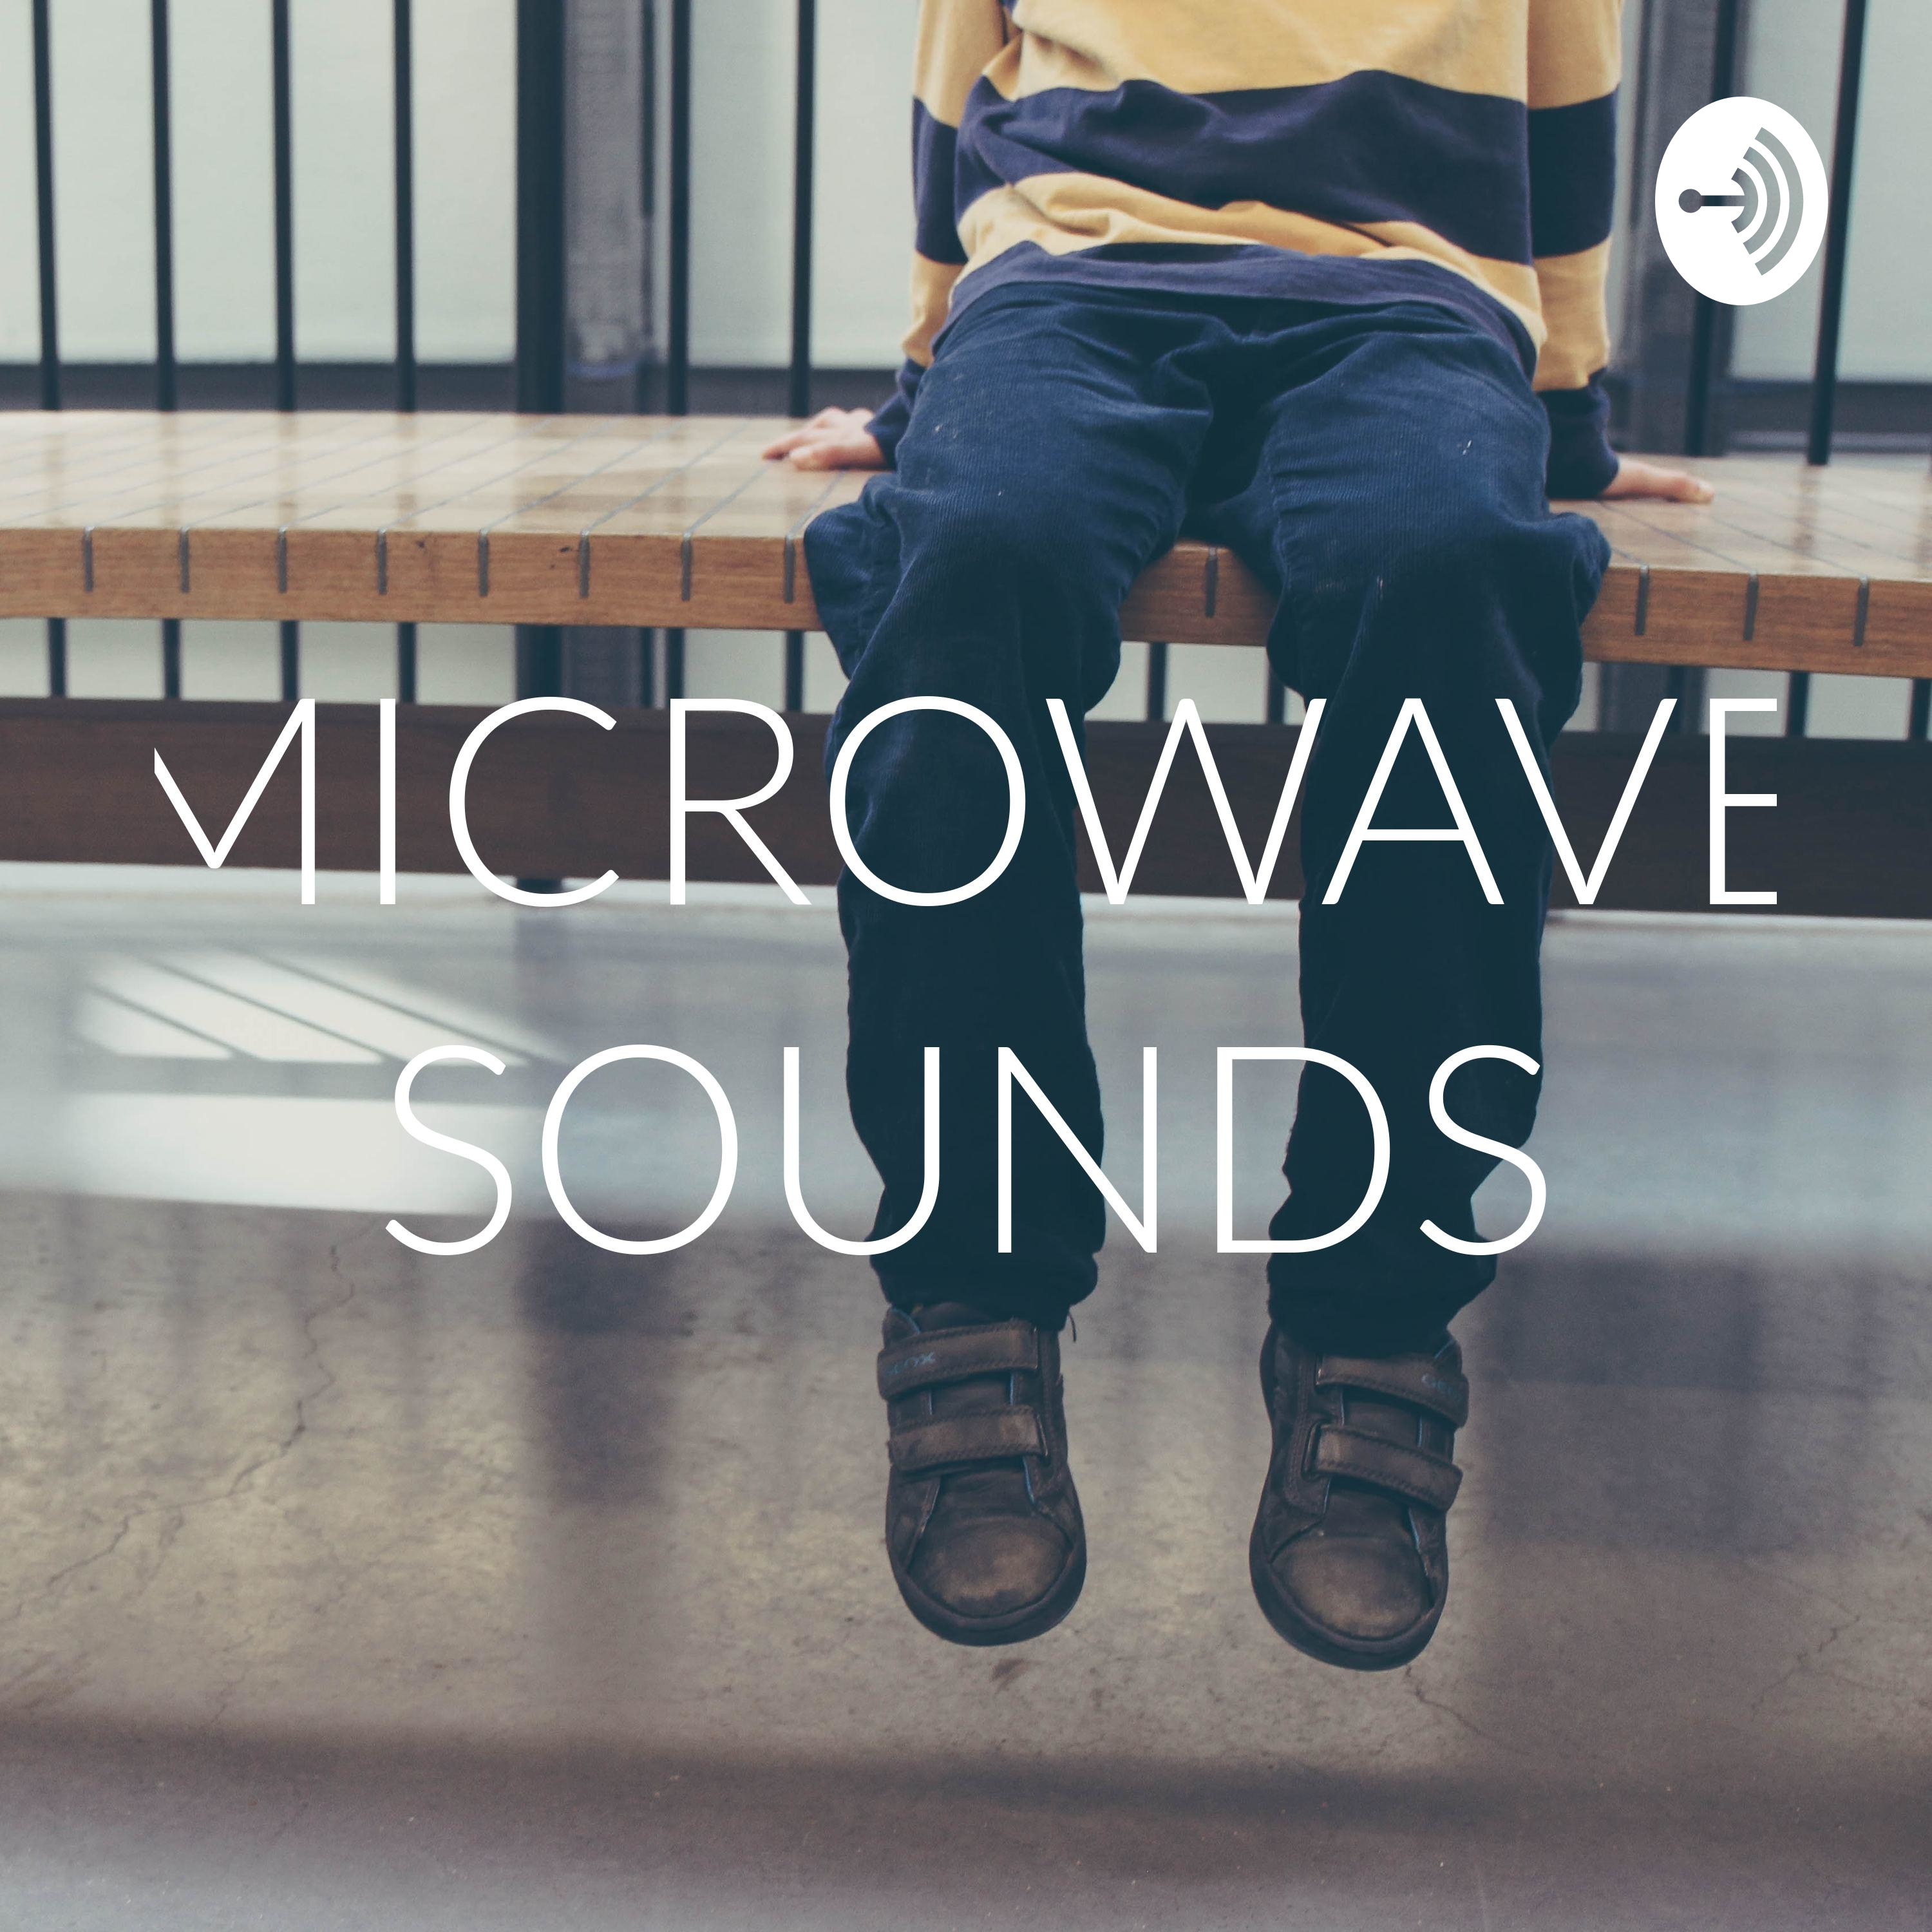 MICROWAVE SOUNDS (Trailer)